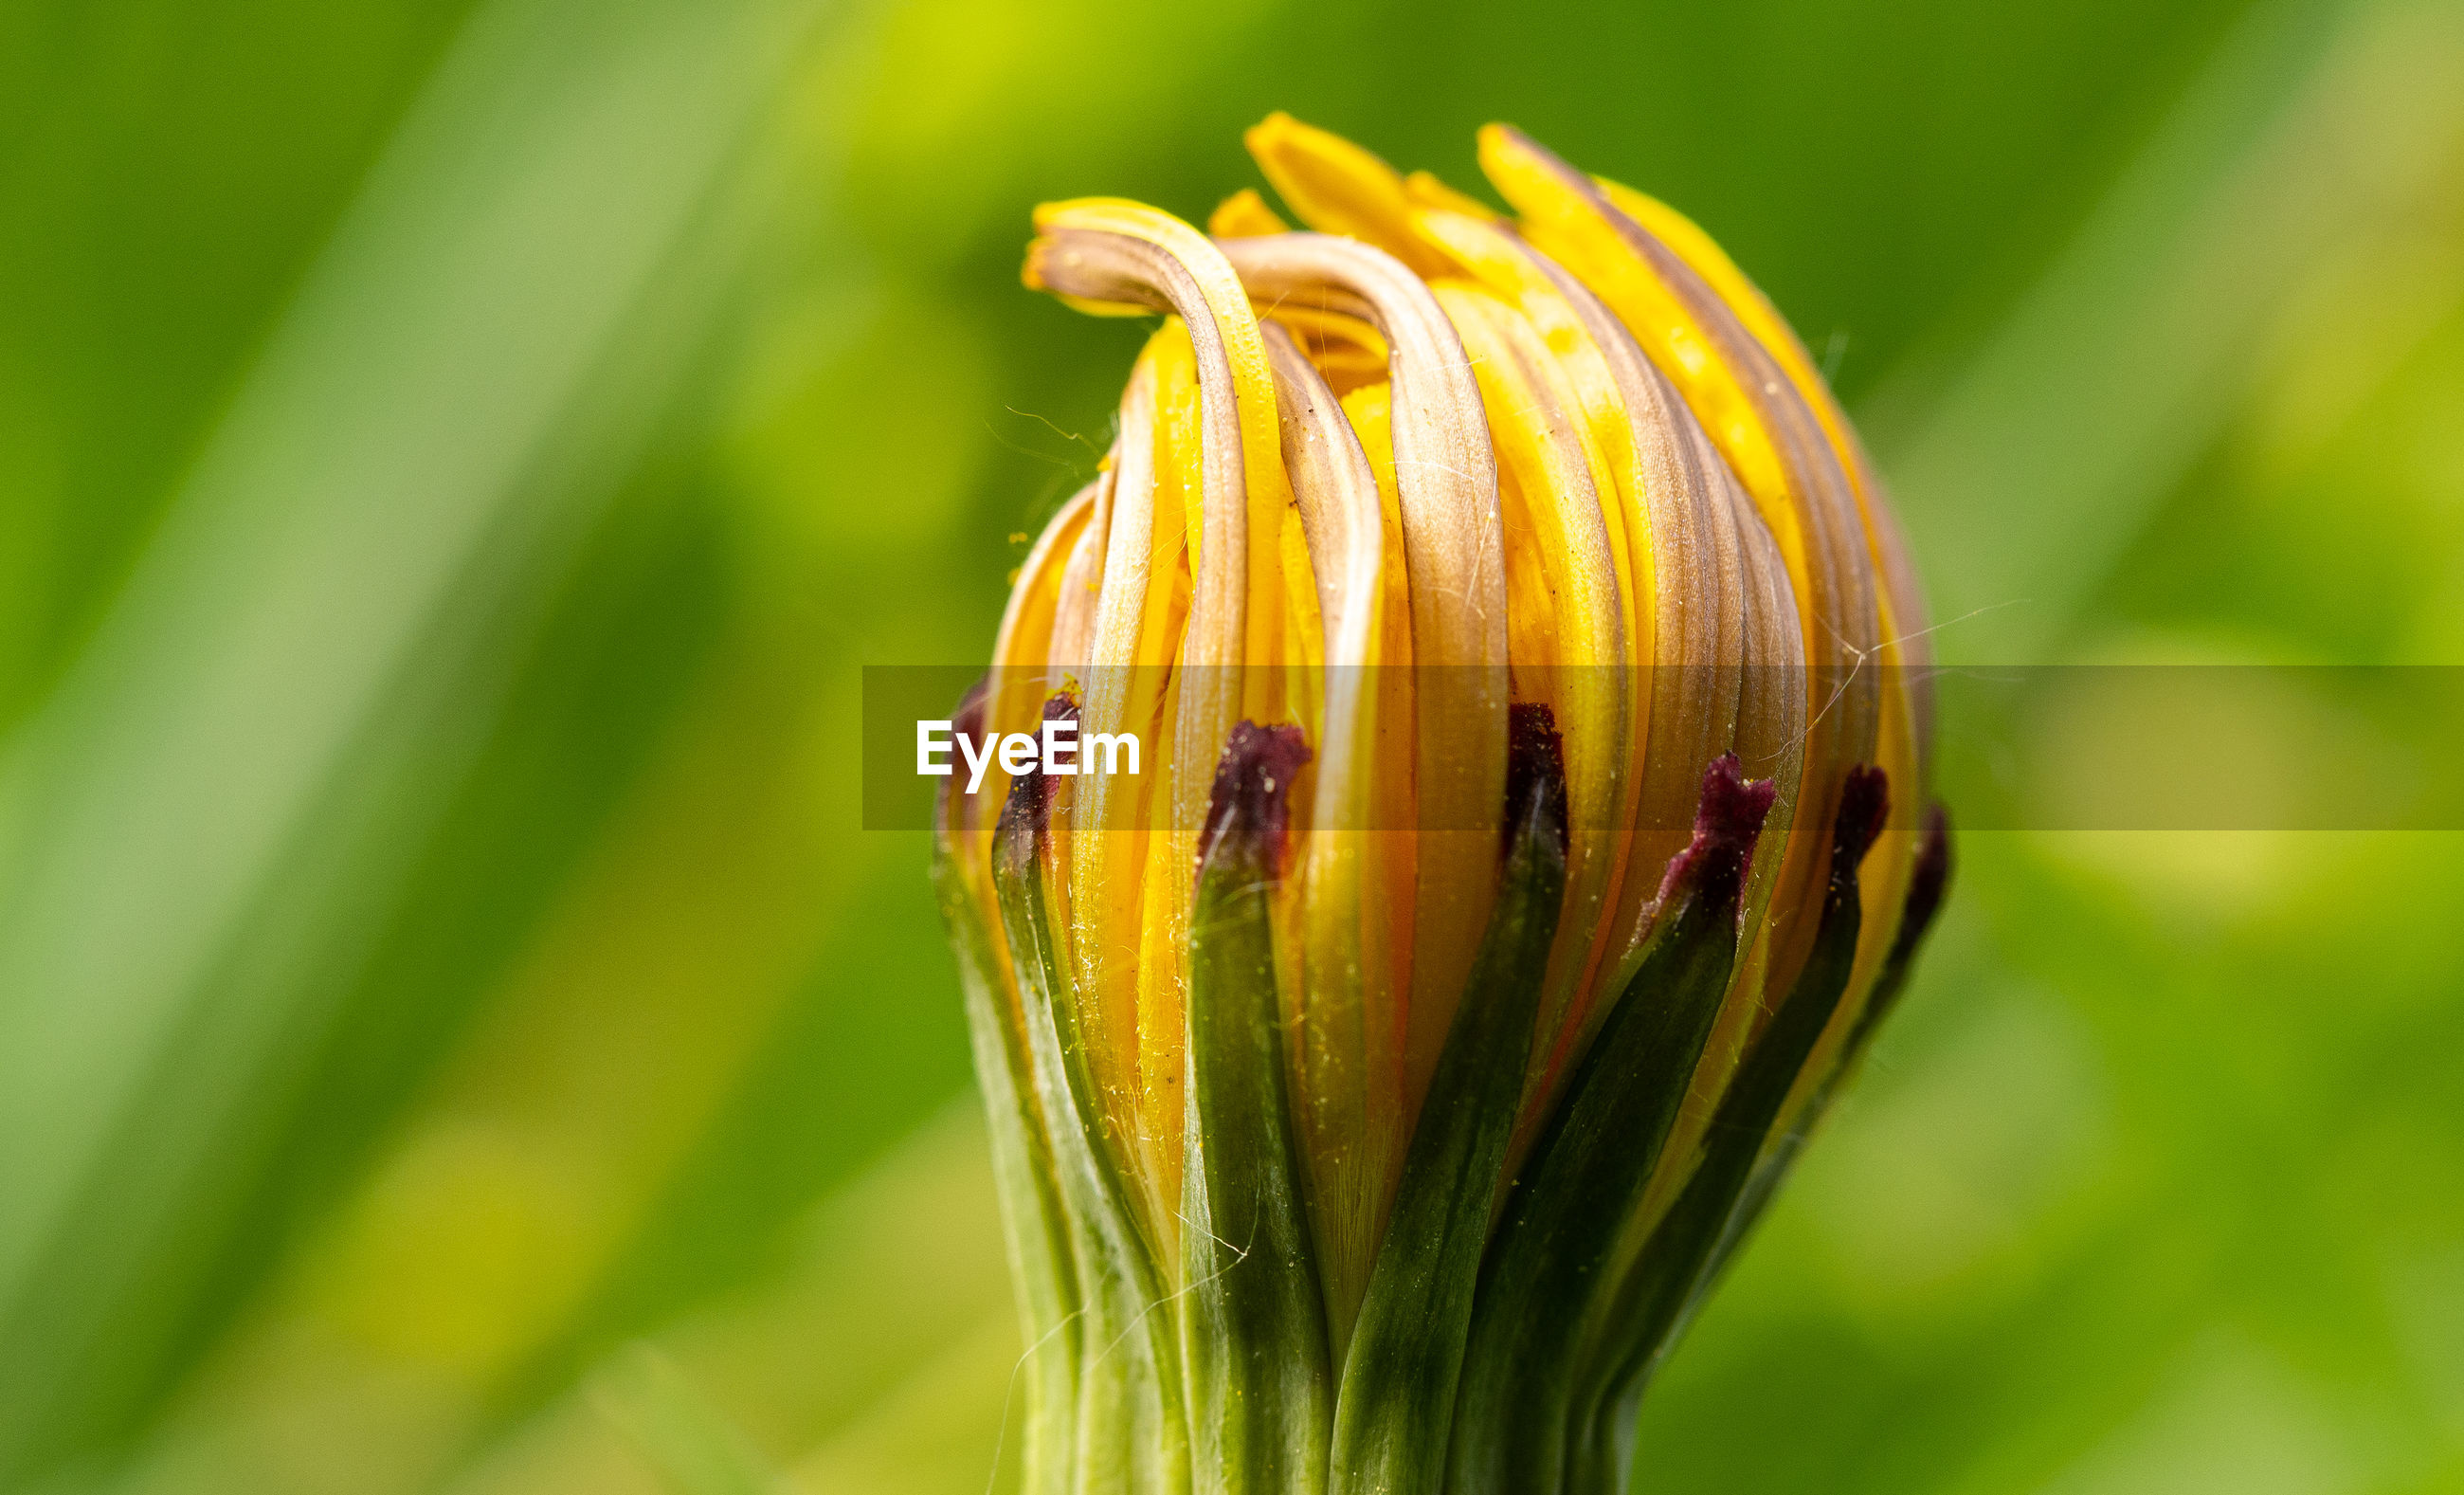 CLOSE-UP OF YELLOW BUG ON PLANT